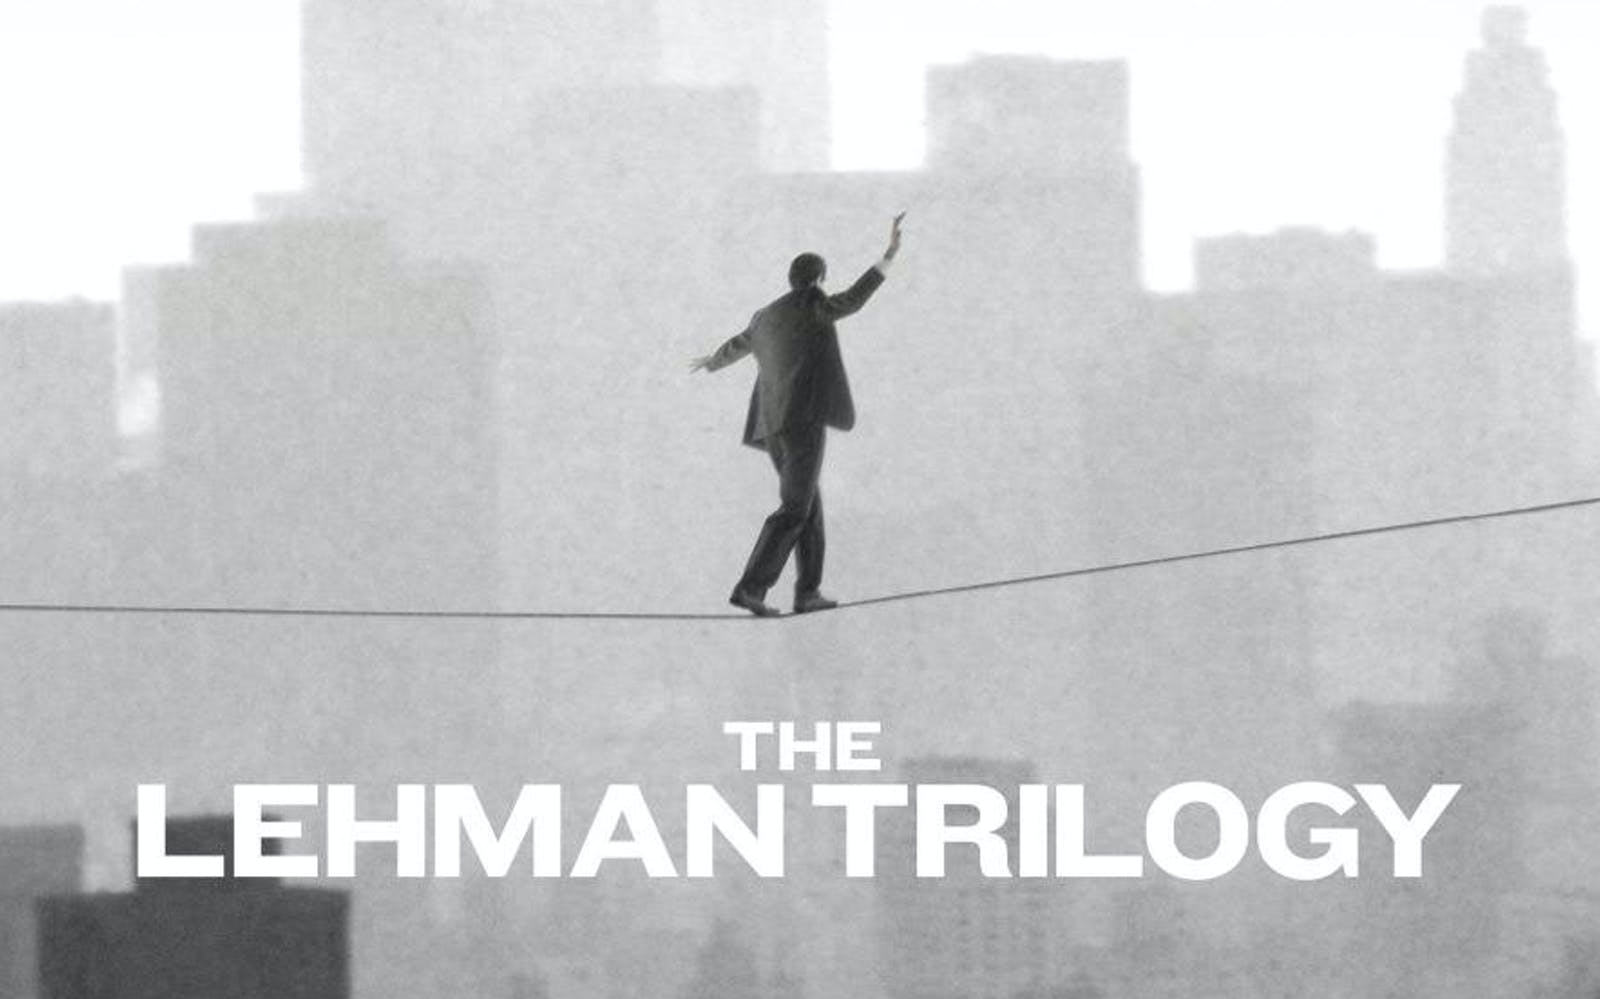 the lehman trilogy-1